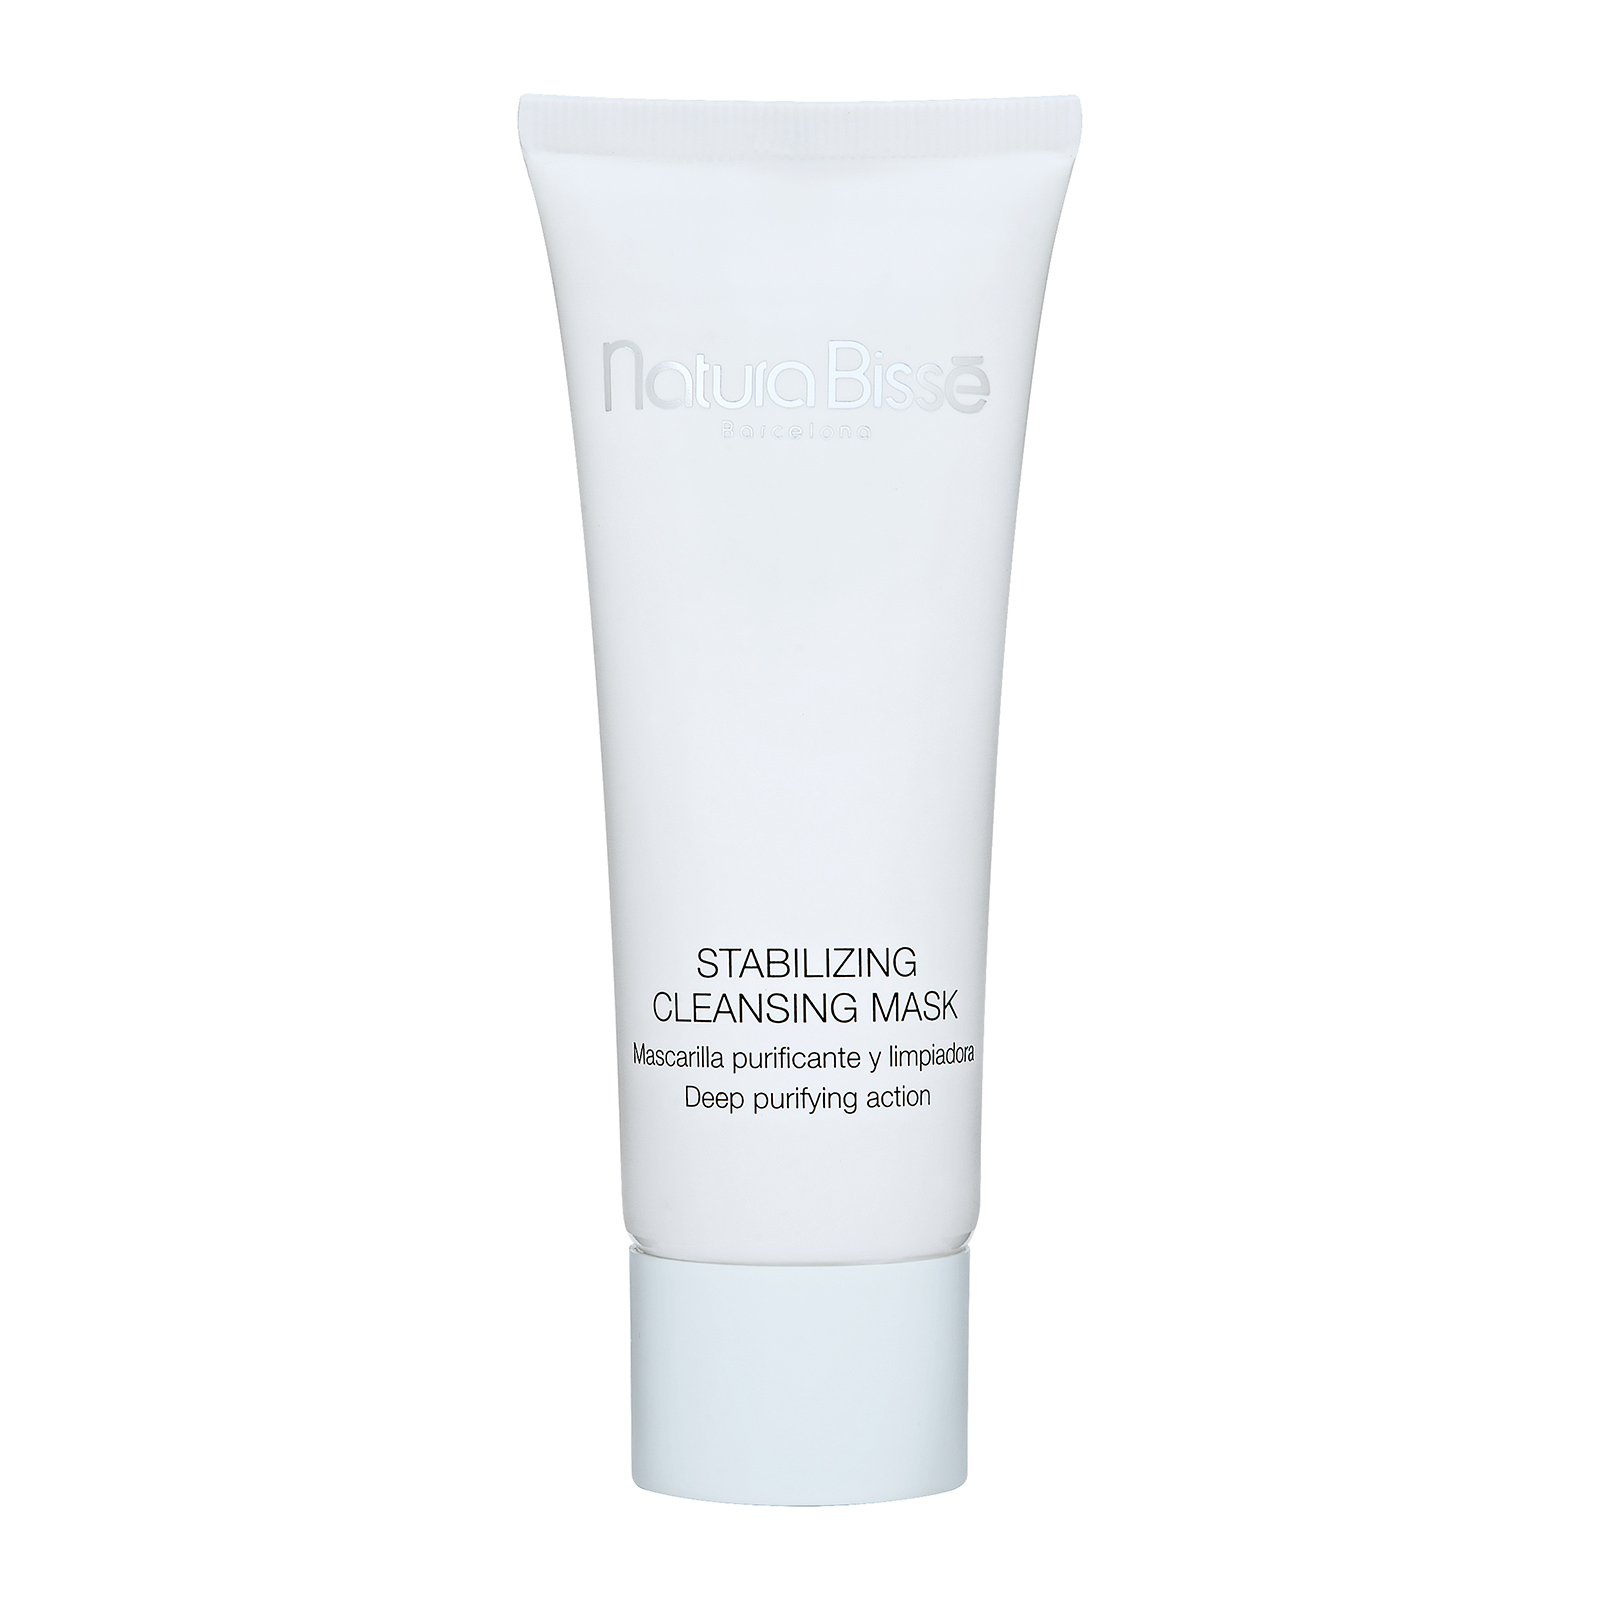 Natura Bisse Stabilizing Cleansing Mask (Deep Purifying Action) 75ml, 2.5oz